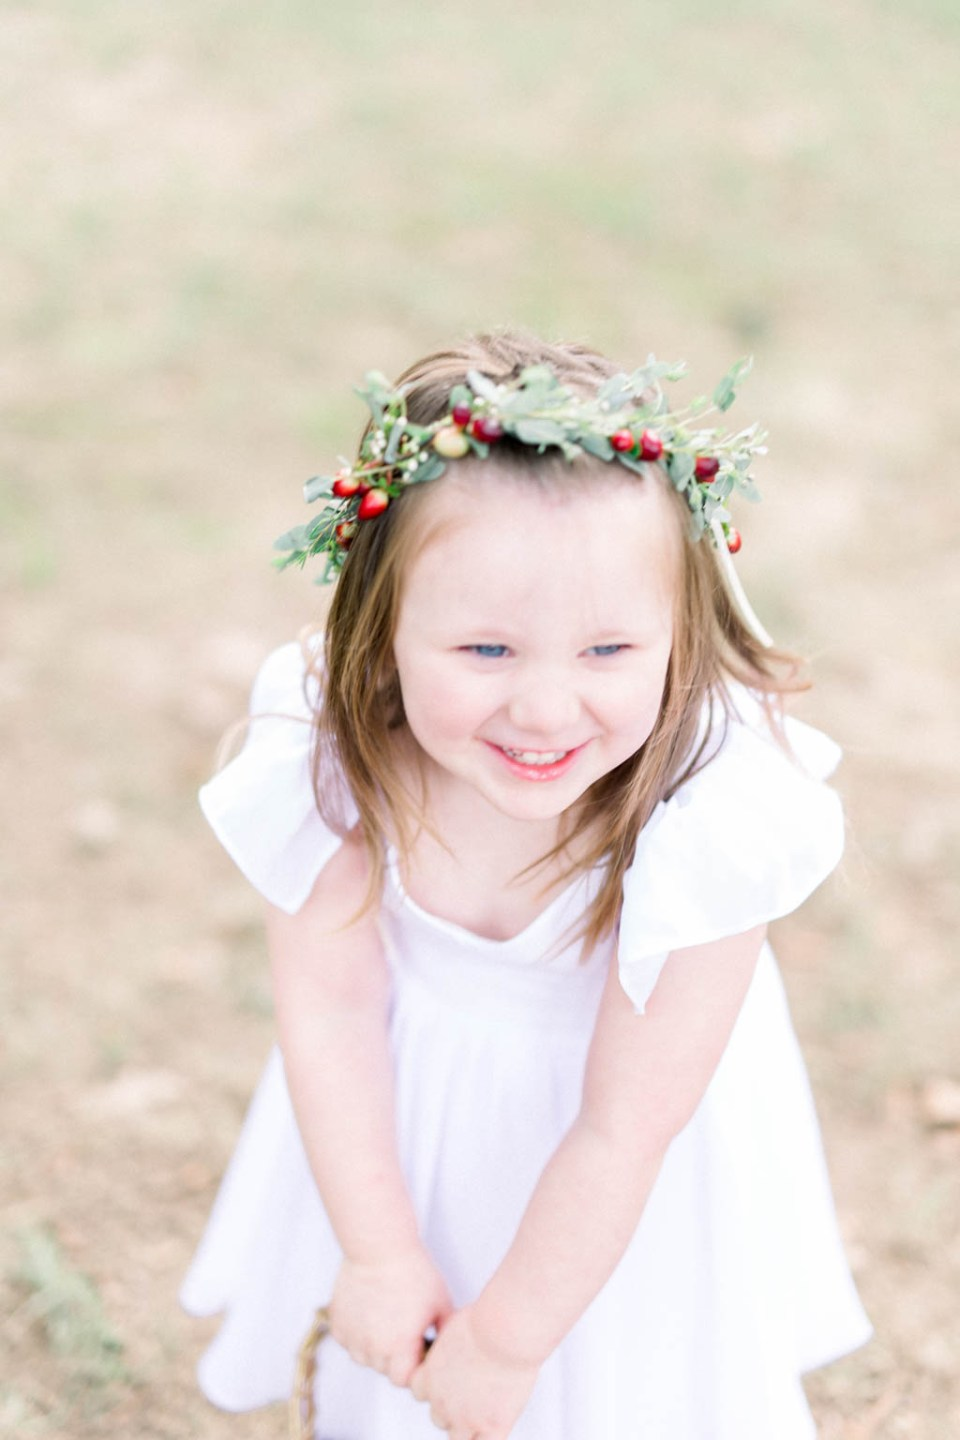 Flower girl flower crown at The Springs wedding by Adria Lea Photography